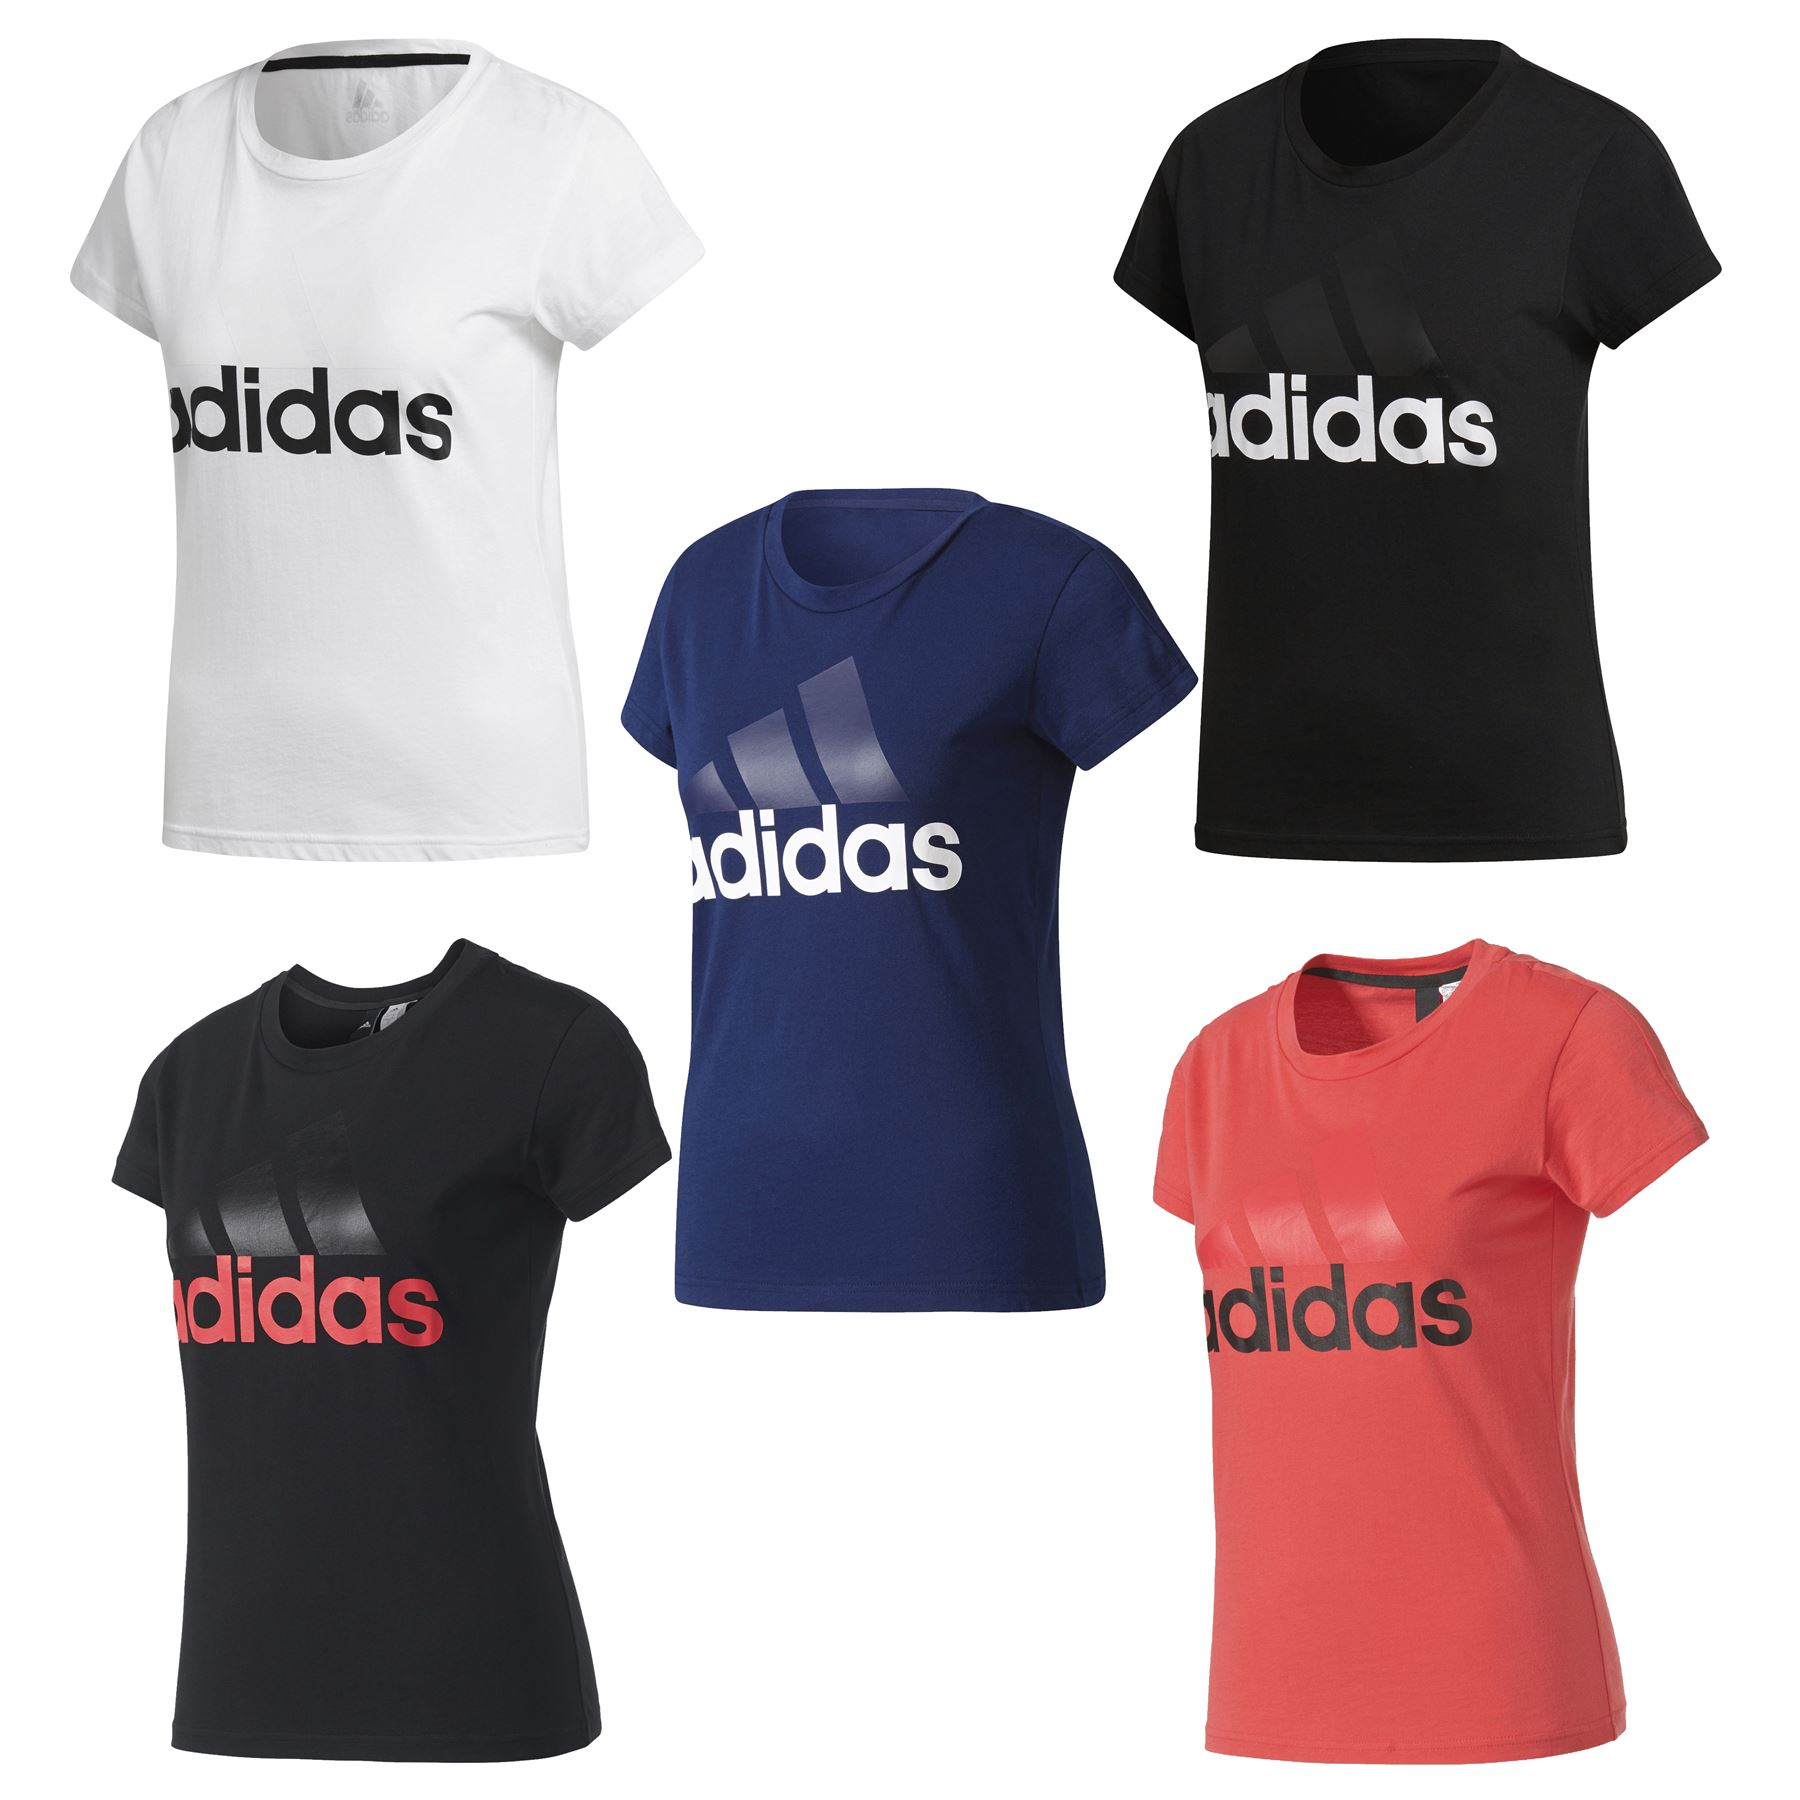 Details about adidas ESSENTIALS LINEAR T SHIRT WOMEN S BLACK WHITE NAVY  PINK GYM RUNNING NEW 73b5764ad1